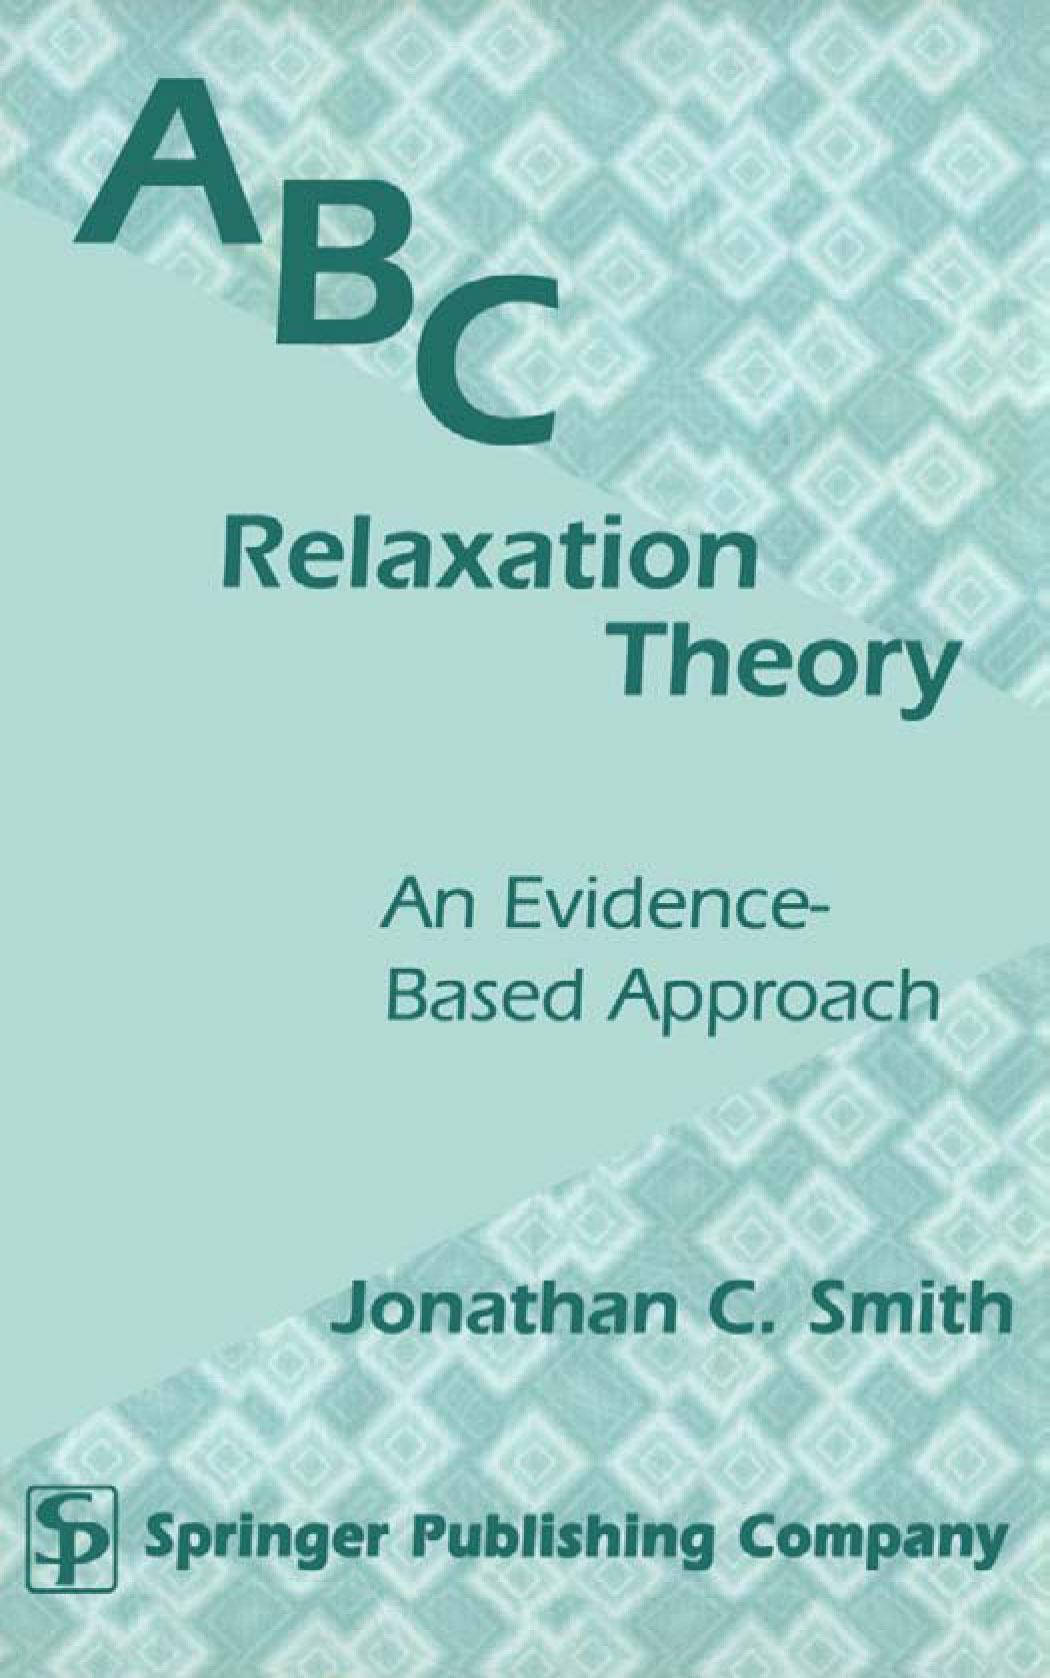 ABC Relaxation Theory: An Evidence-Based Approach